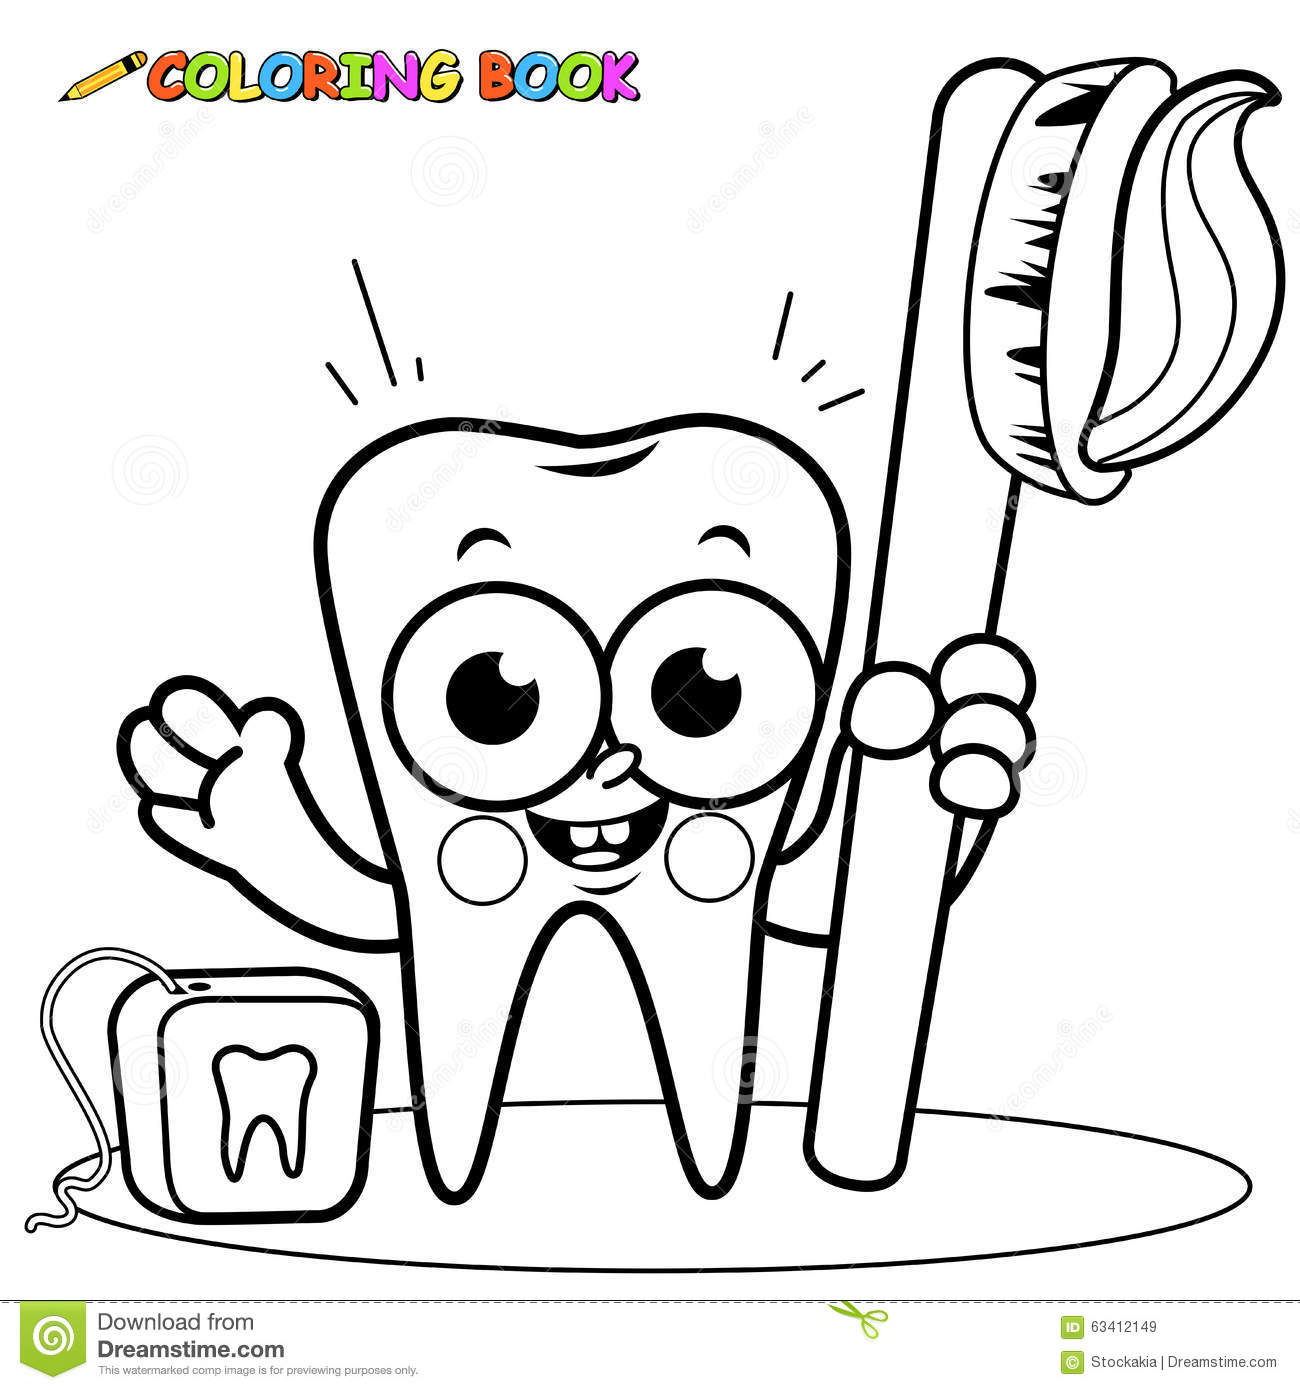 Coloring Page Tooth Cartoon Holding Toothbrush And Dental Floss ...